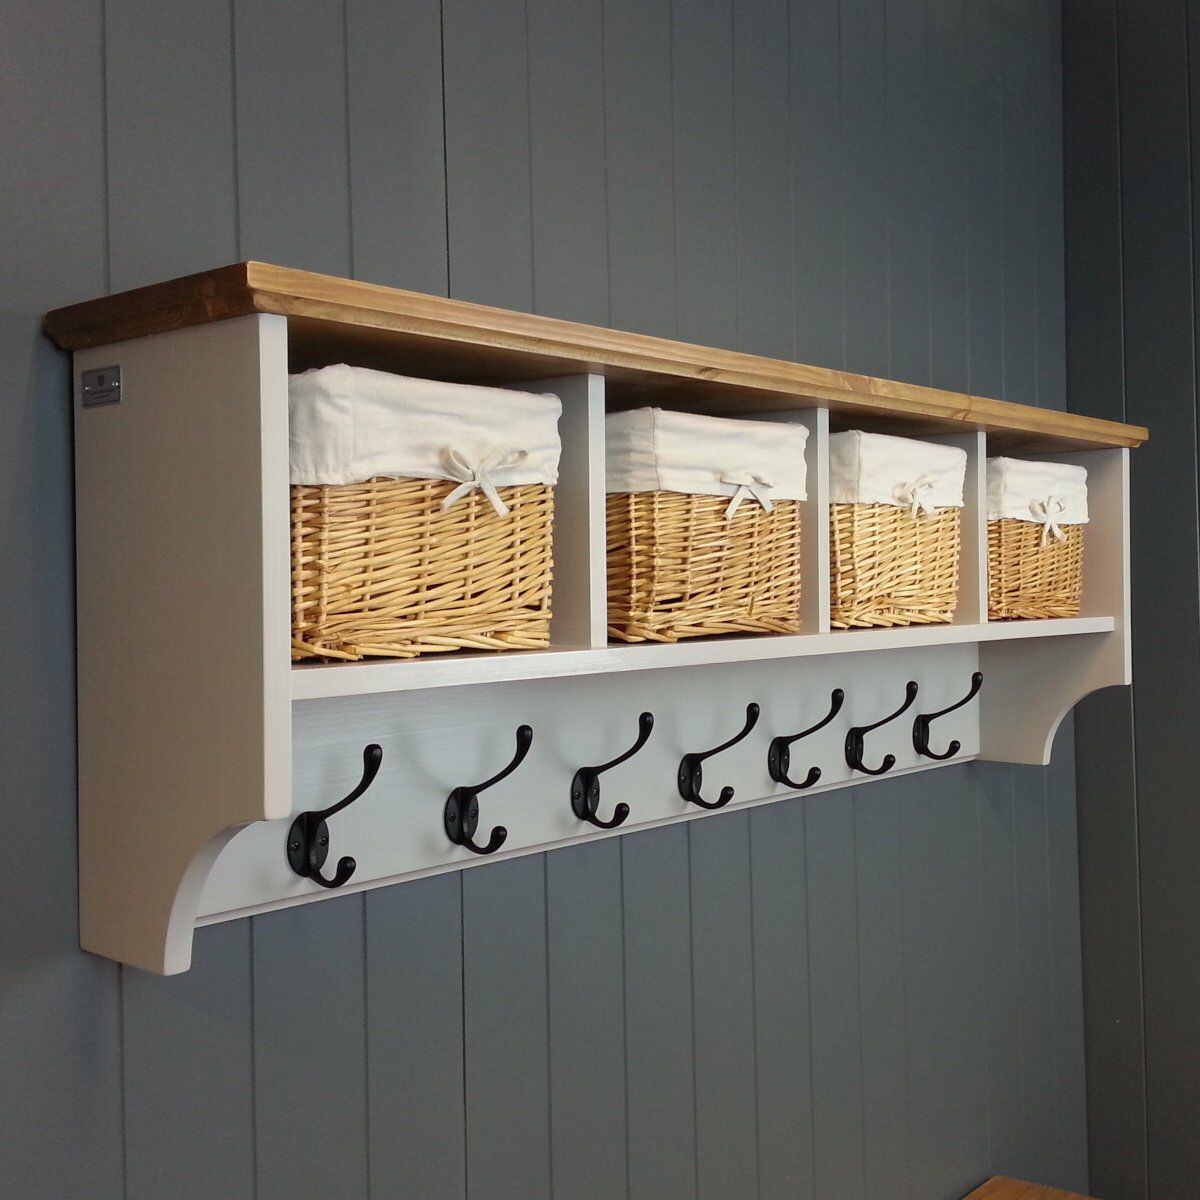 Hat Coat Rack With Shelf Including Storage Baskets Compartments And Cubby Holes Painted Wood Wall Mount With Images Coat Rack Shelf Wall Cubbies Wall Shelf With Baskets